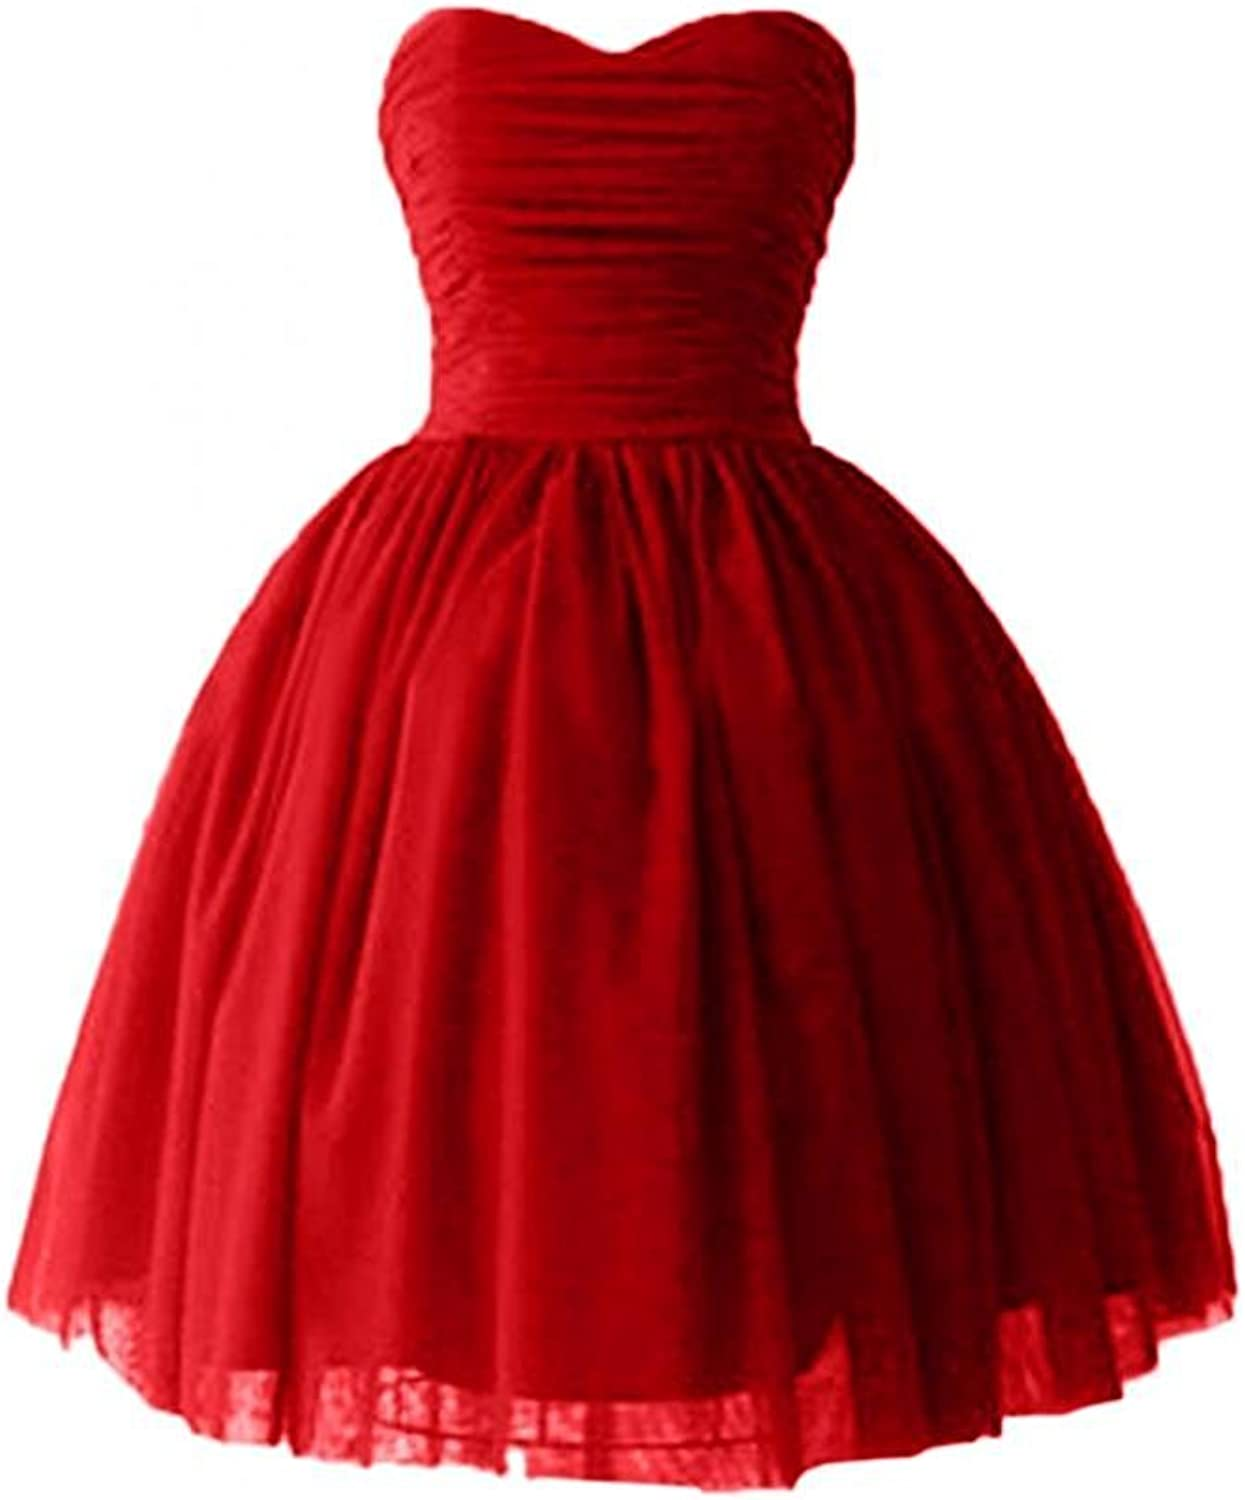 Lemai Short Tulle Sweetheart Prom Dress Evening Homecoming Party Gowns